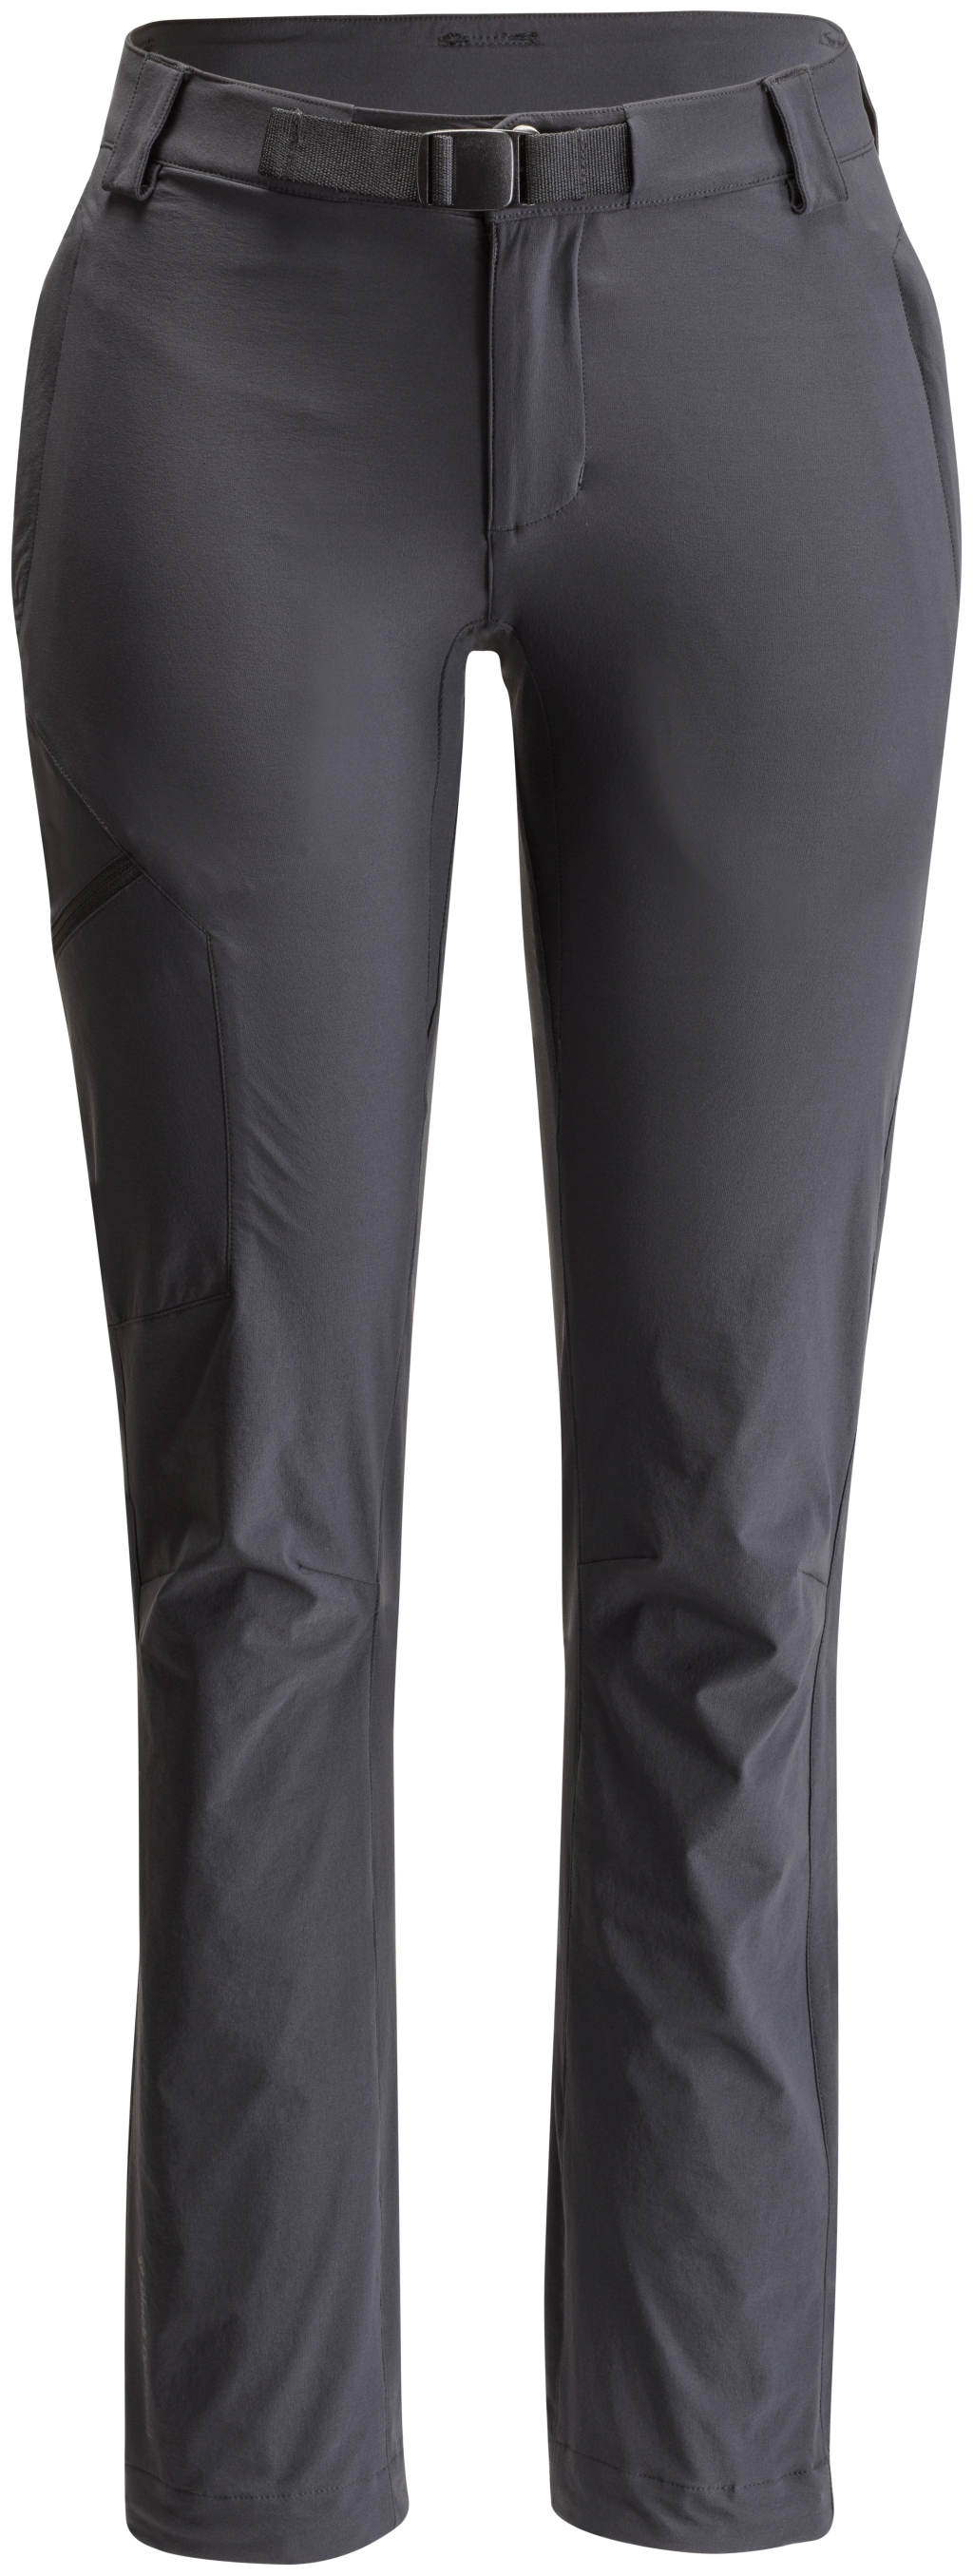 Black Diamond Alpine Softshell Pants Women's Smoke-30